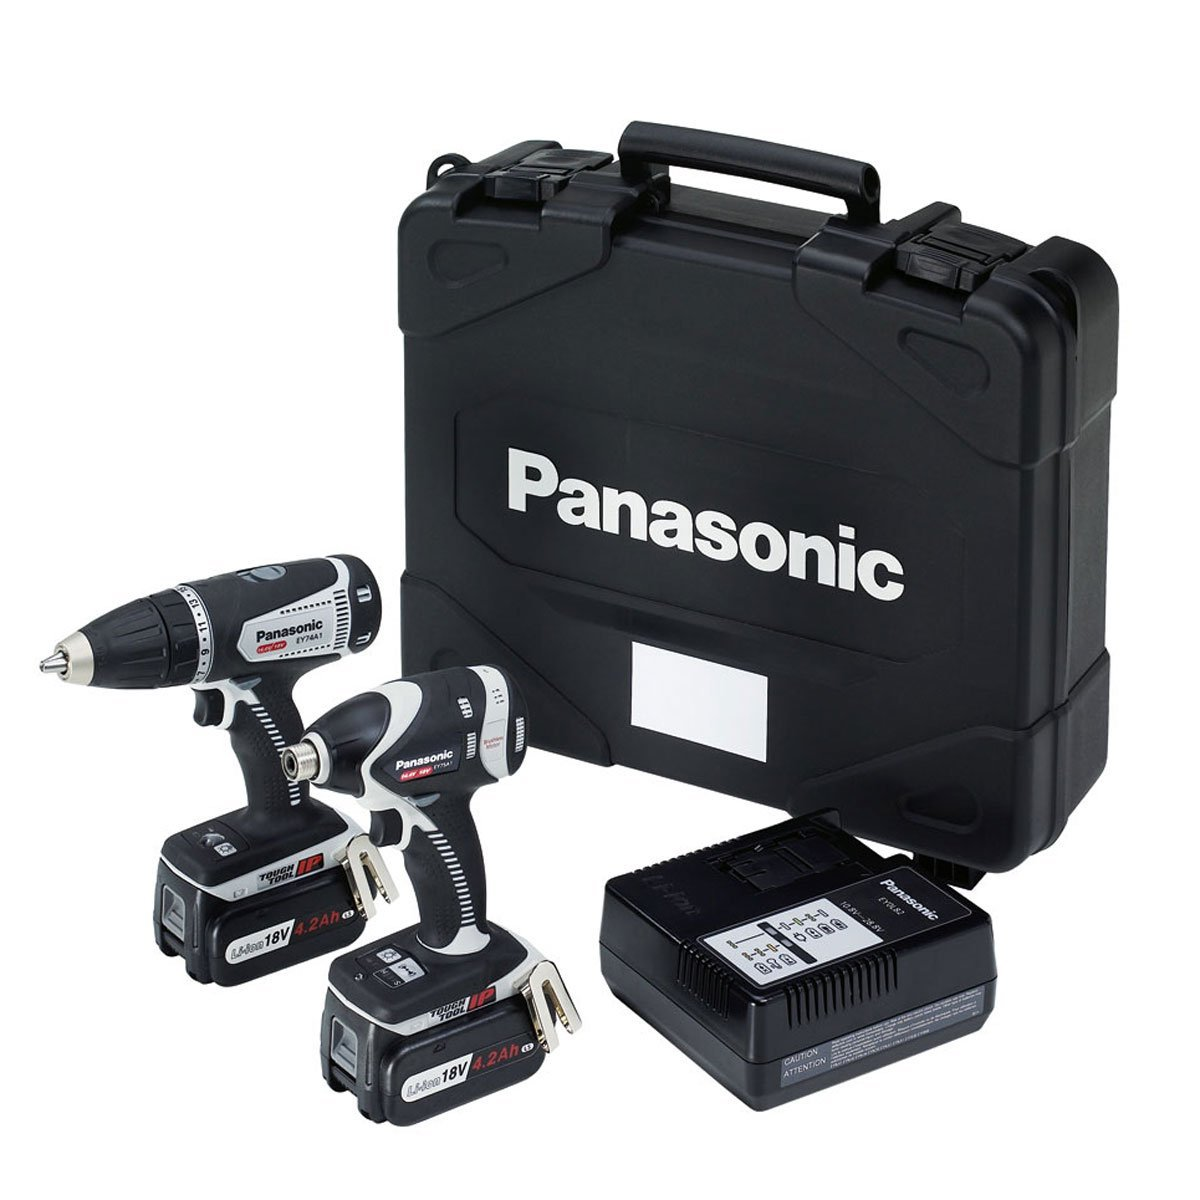 PANASONIC EYC200LS3T31 18V DUAL VOLTAGE DRILL DRIVER & IMPACT DRIVER TWIN PACK 3 X 18V 4.2AH LI-ION BATTERIES (SPECIAL EDITION)